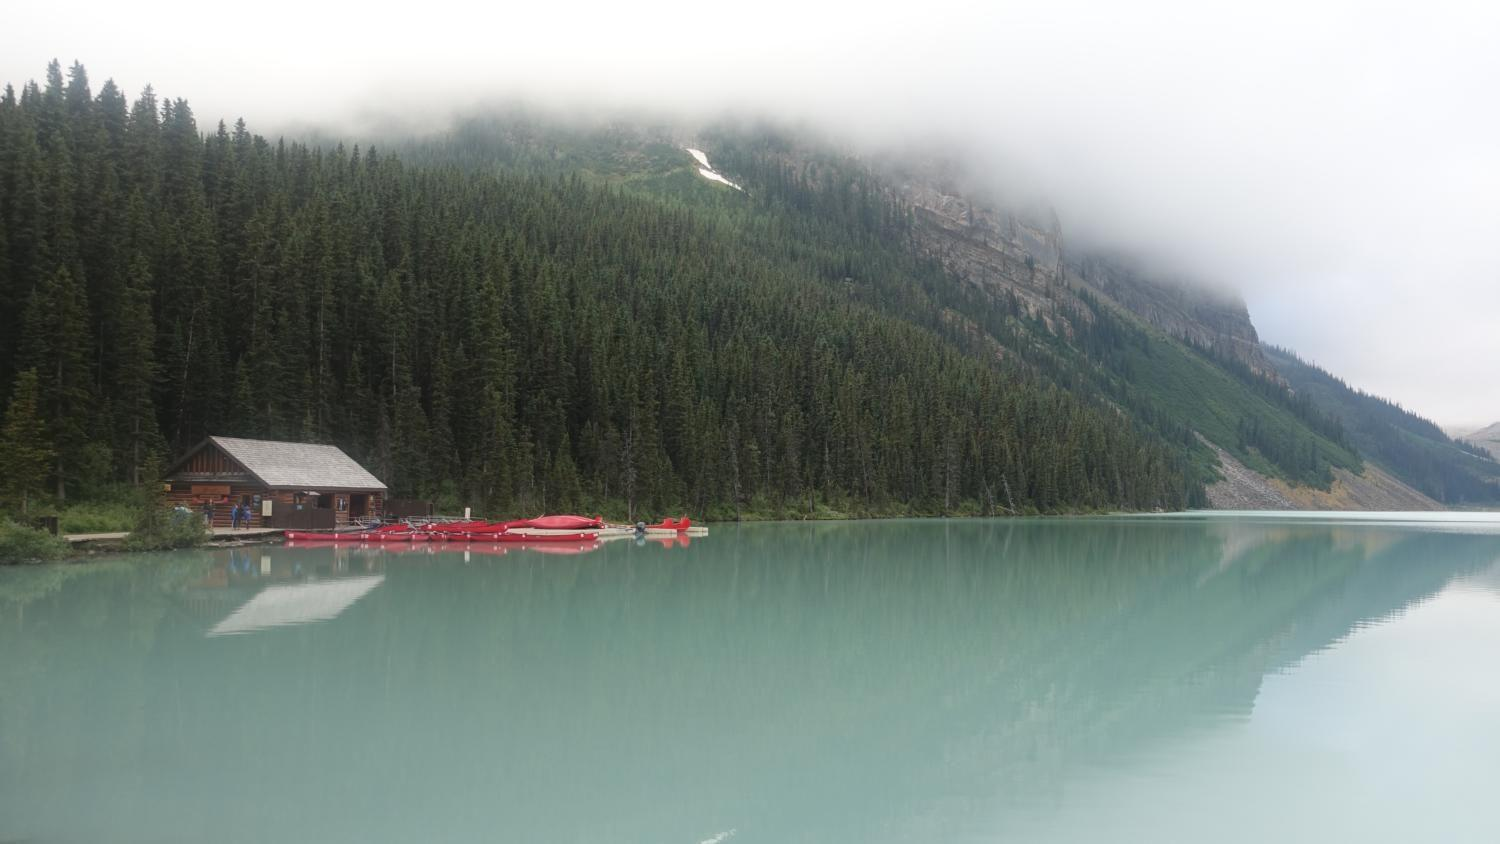 Lake+Louise+is+located+in+Alberta%2C+Canada+and+is+fed+by+the+glaciers+that+overlook+the+lake.+While+traveling+also+provides+a+vacation+from+the+routines+of+daily+life%2C+it+also+serves+as+a+means+to+become+more+globally+aware+and+knowledgeable.